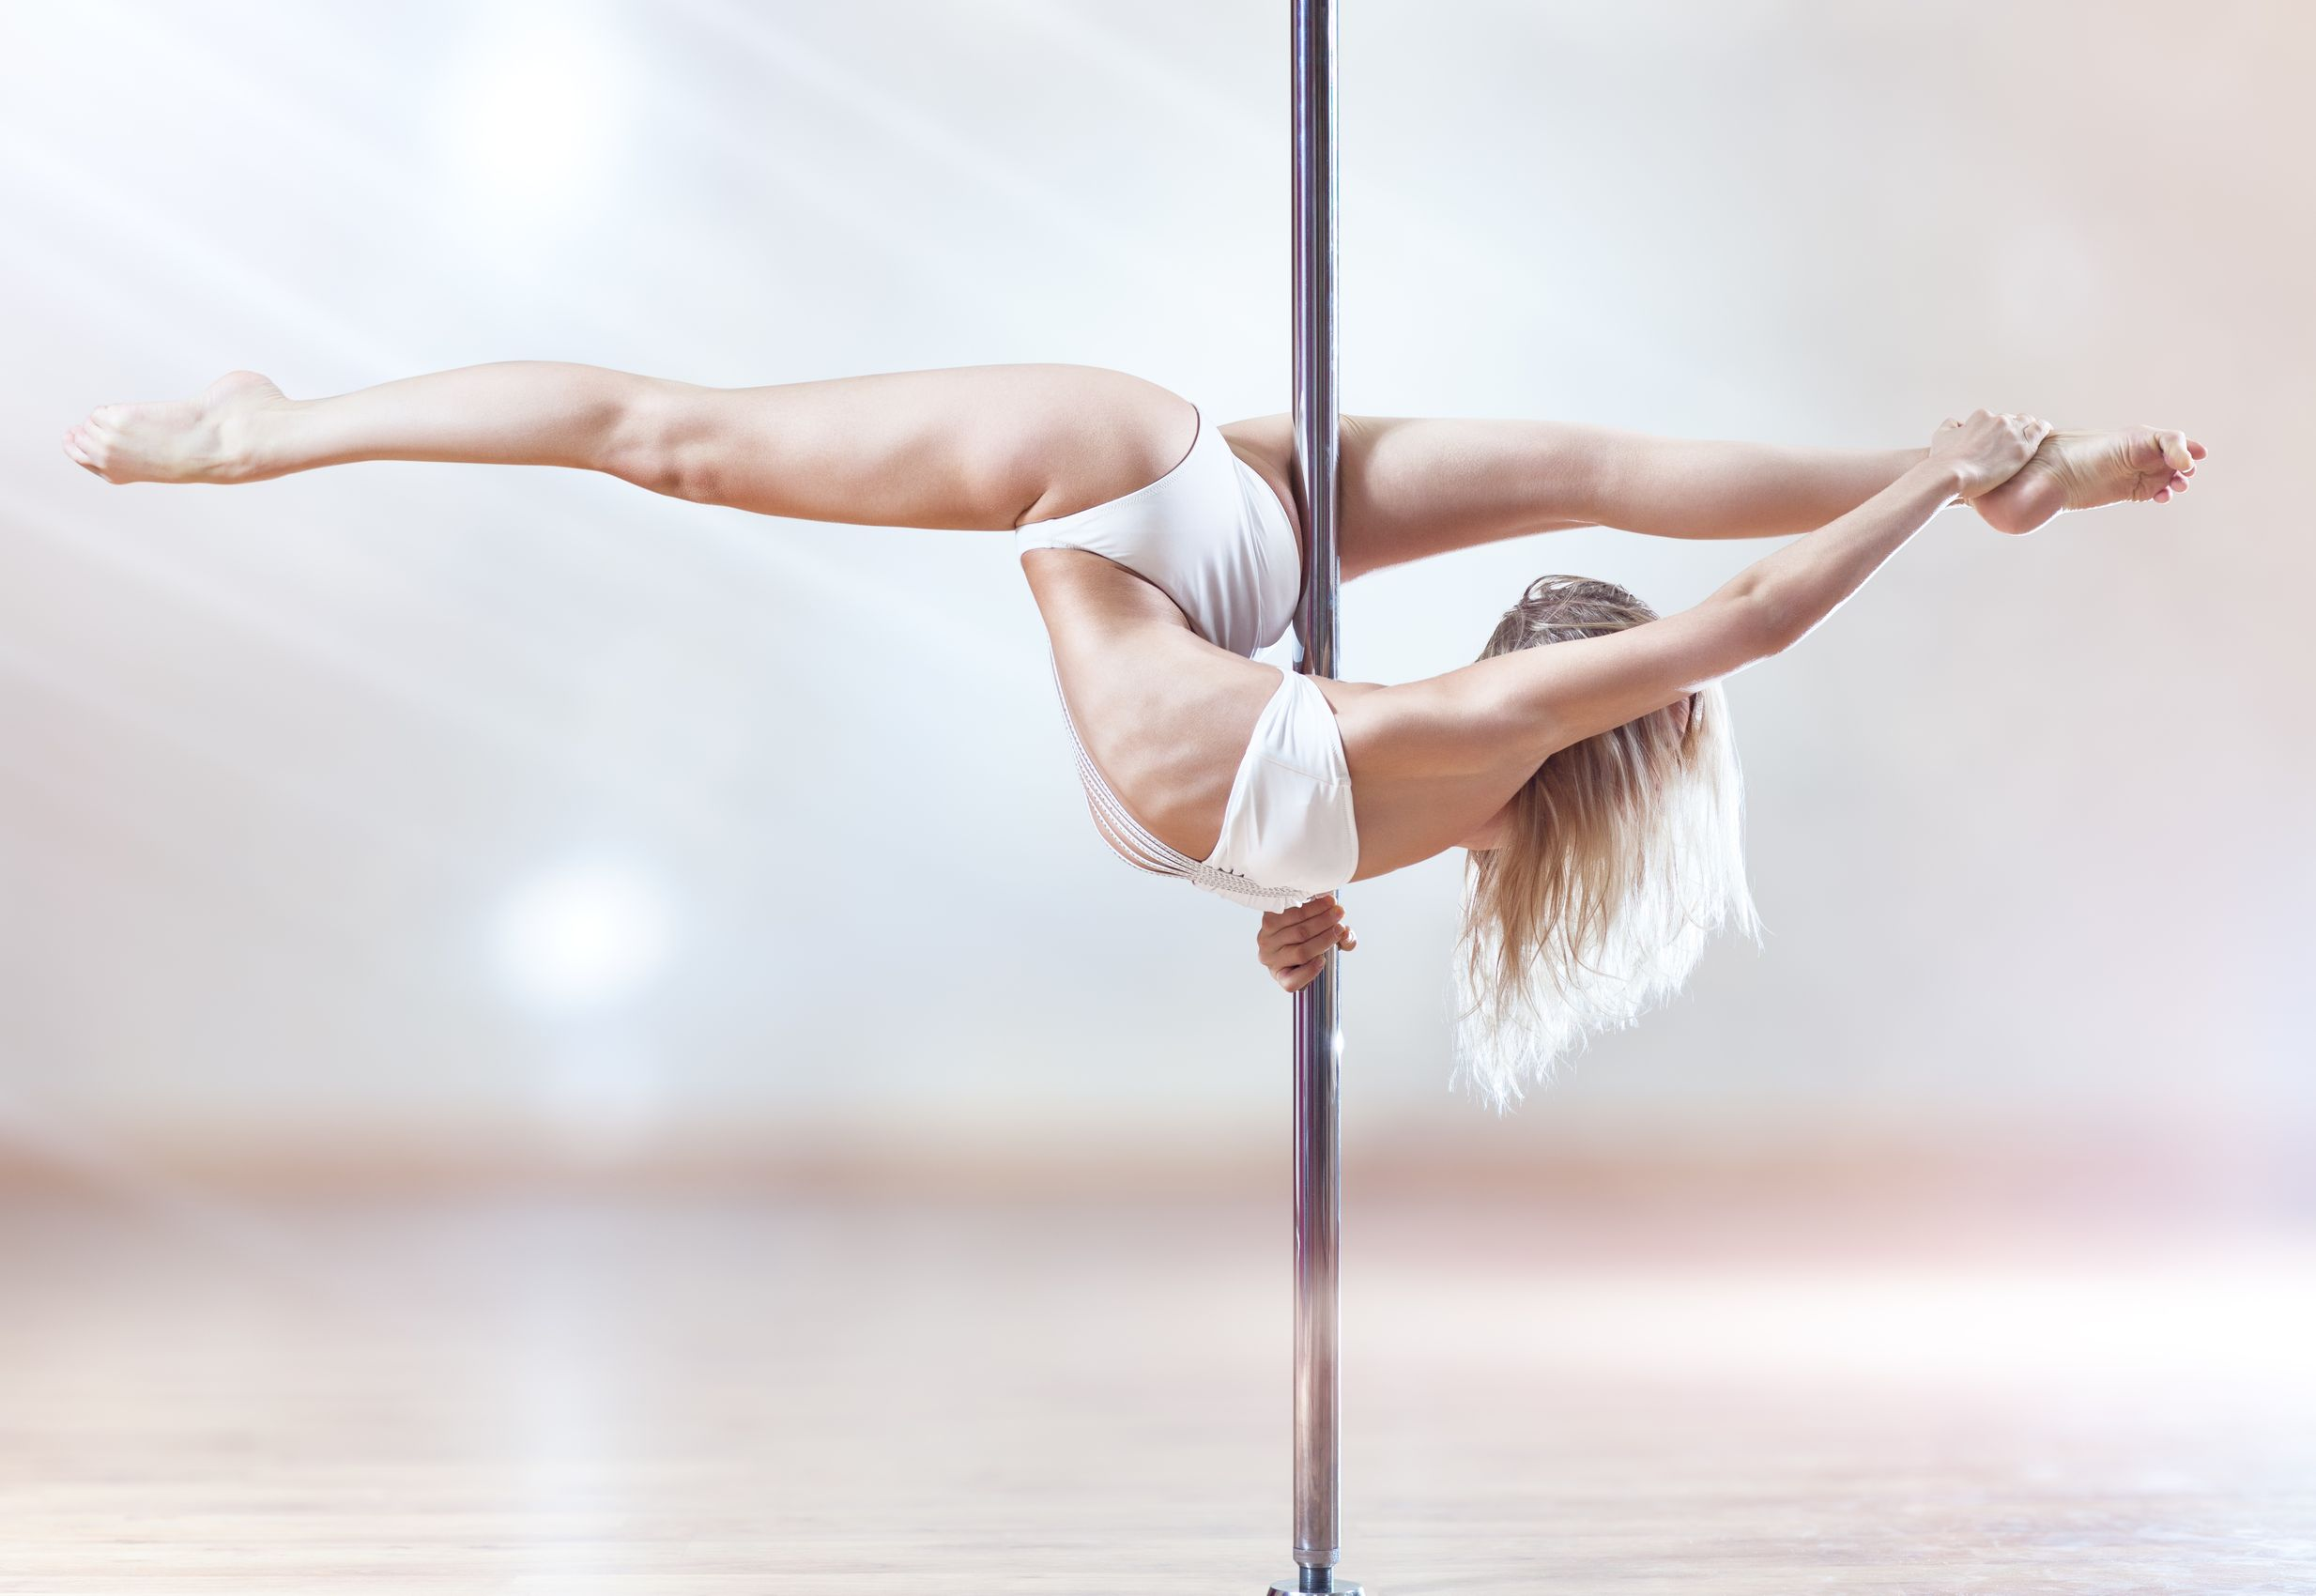 LadyInDream Love to dance! Want to learn pole dancing! custom pic 1